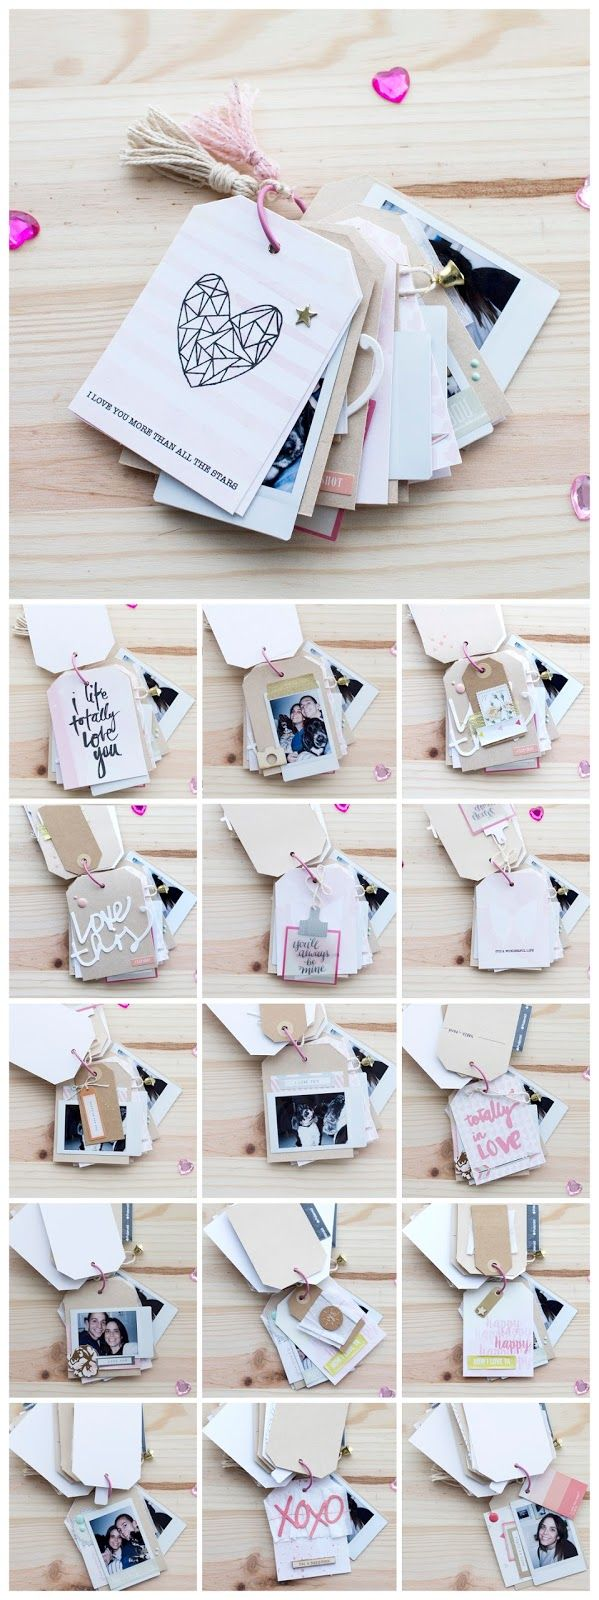 46 Best Images On Pinterest Christmas Crafts Birthdays And Kim Angelica Chocker Hole Dress Broken White Qu Tal Un Mini Lbum En Forma De Tag Para Aadirlo Como Etiqueta El Regalo